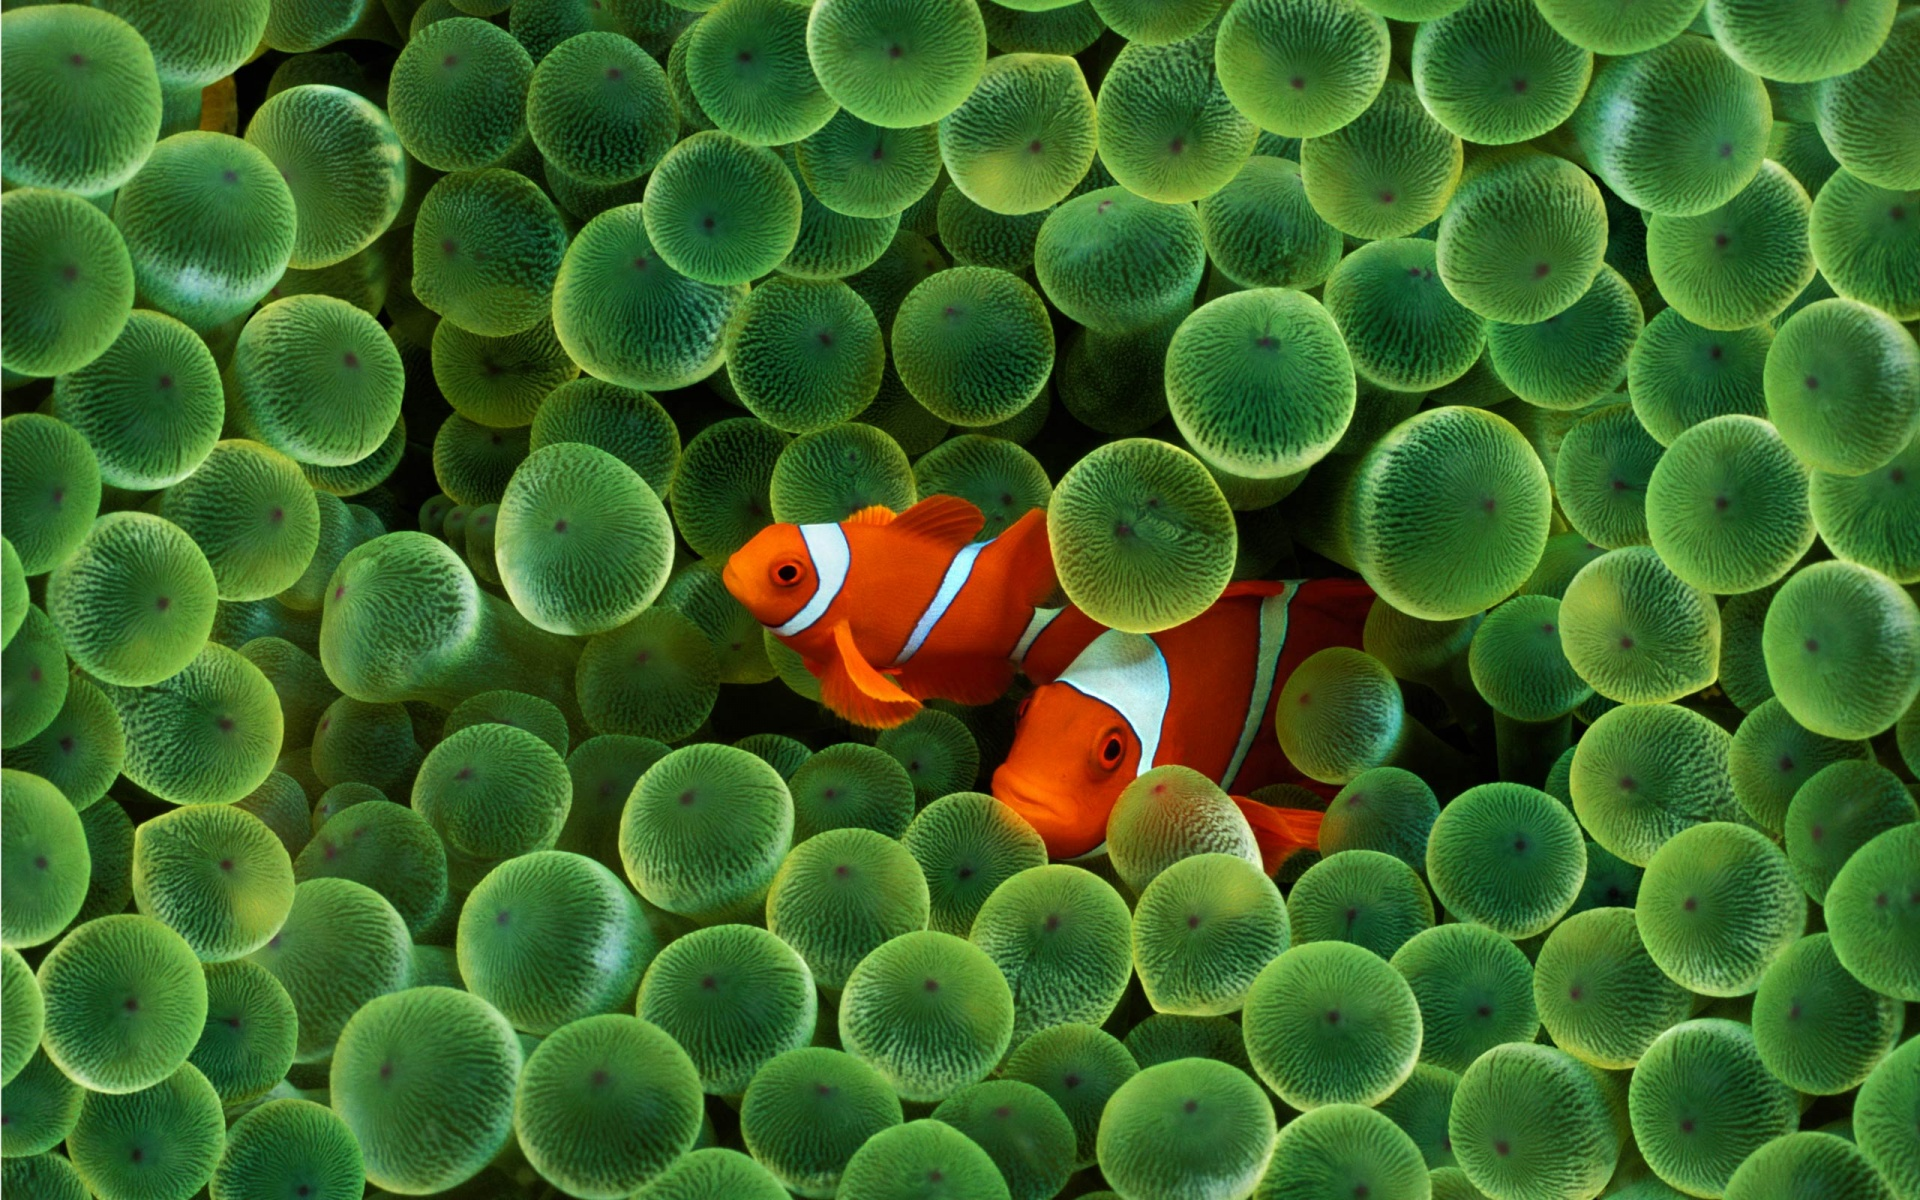 8589130425708 apple clown fish wallpaper hdjpg 1920x1200